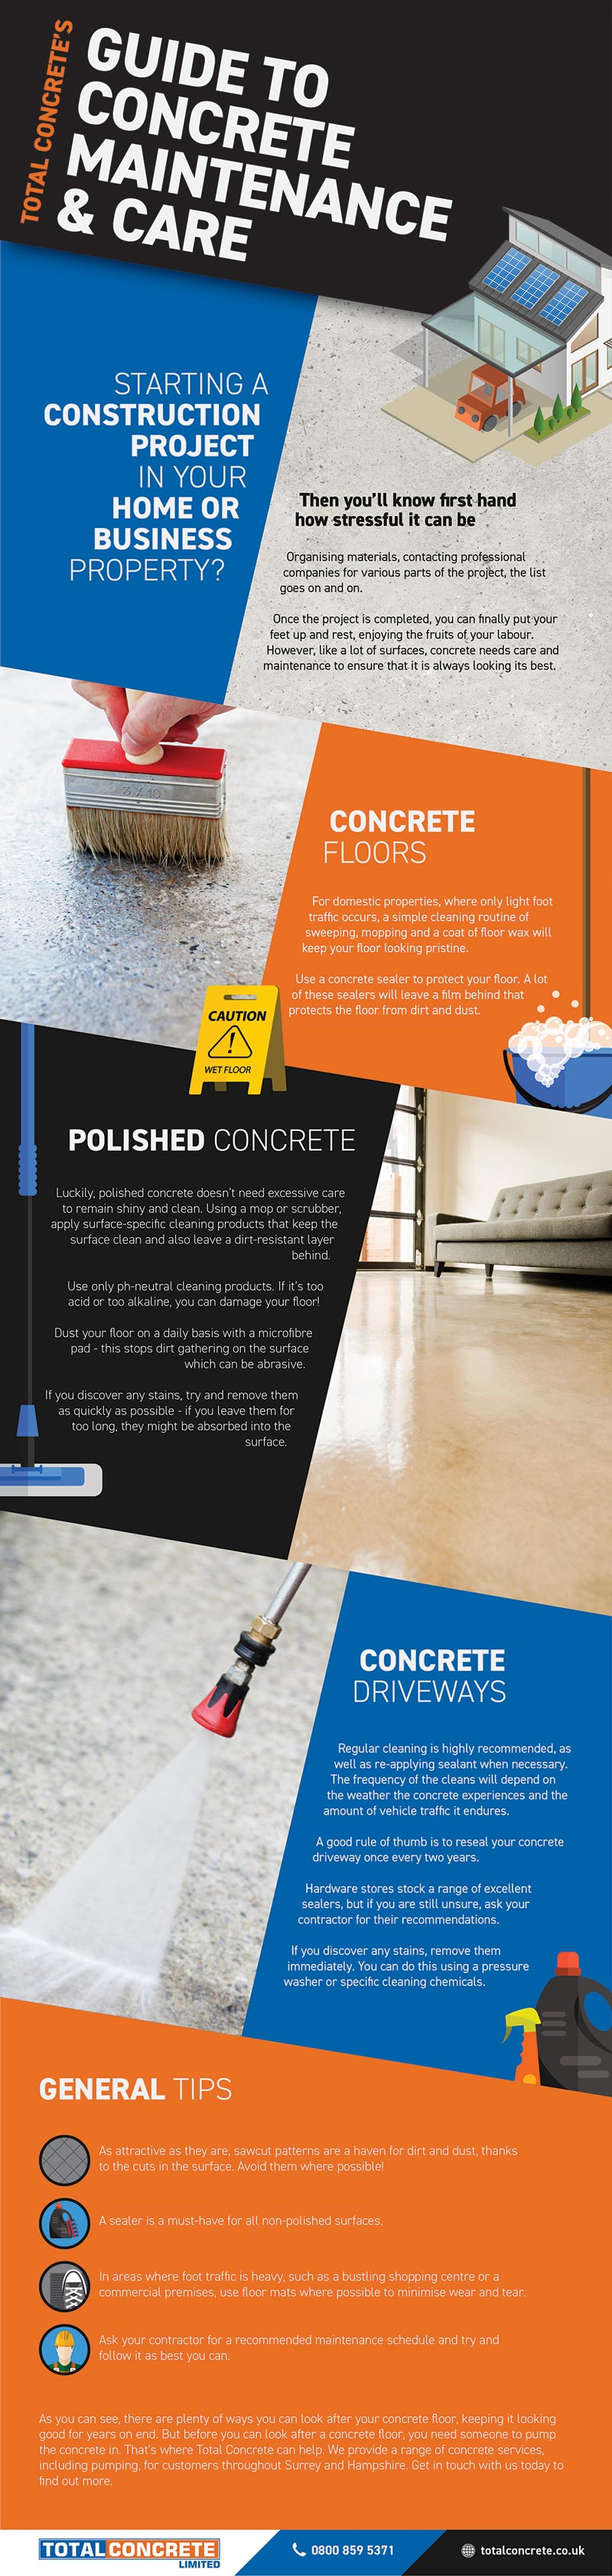 concrete maintenance guide